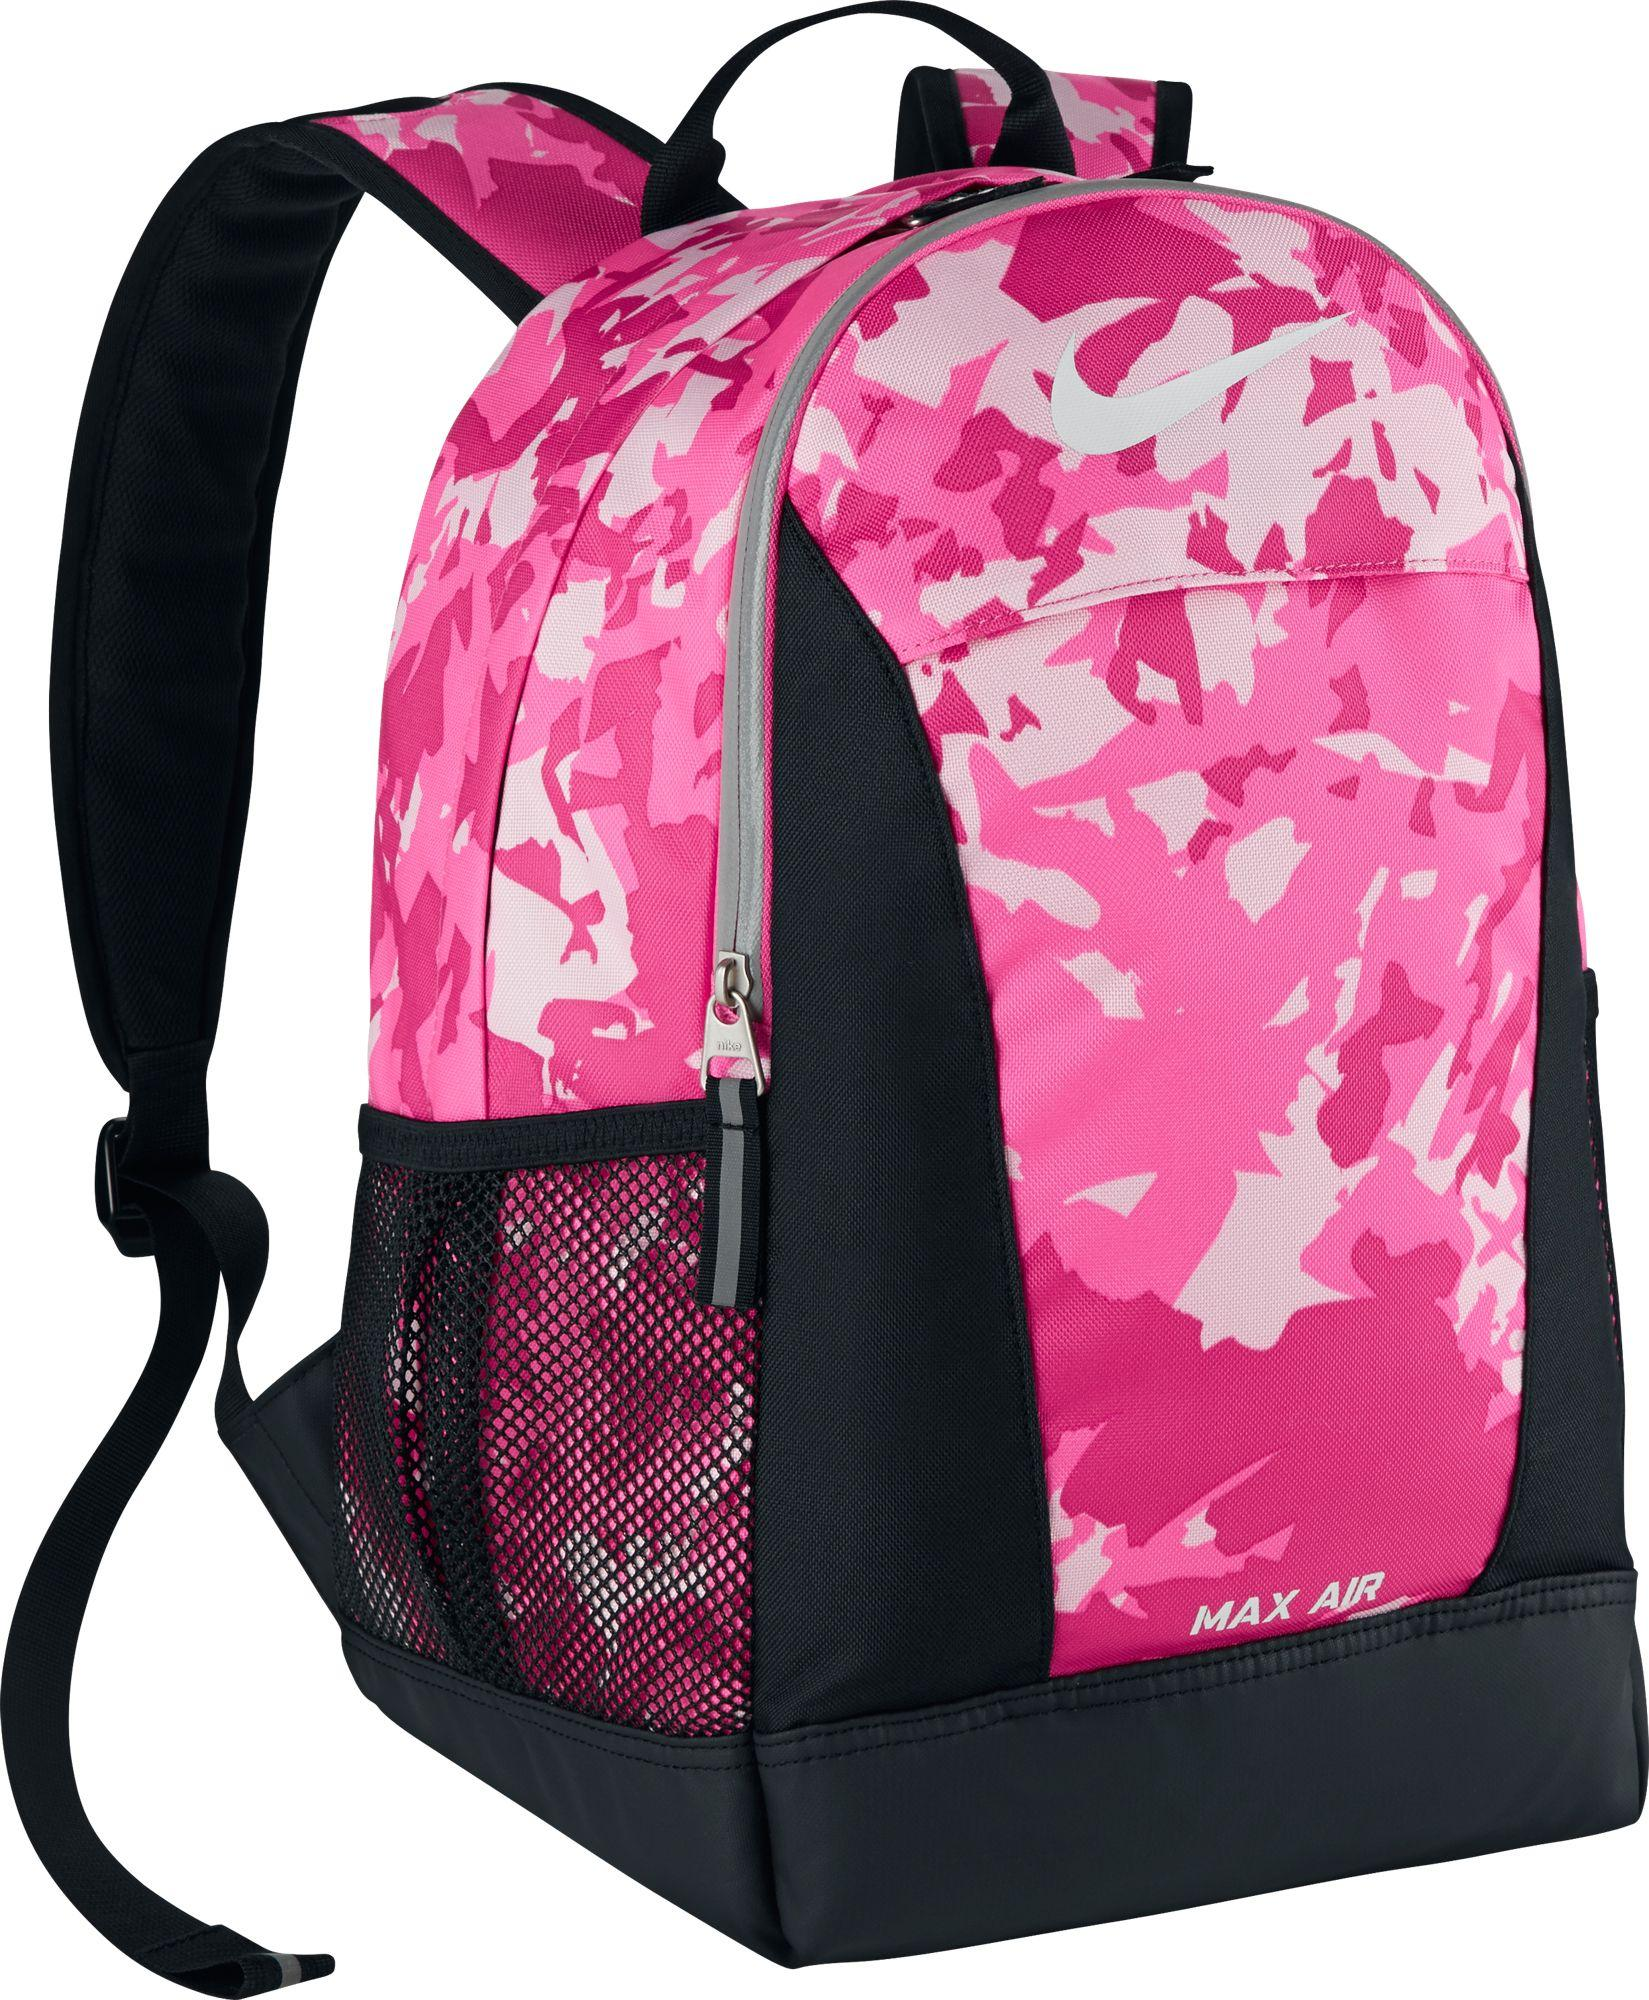 b6329caf2d Lyst - Nike Ya Max Air Team Training Small Backpack in Pink